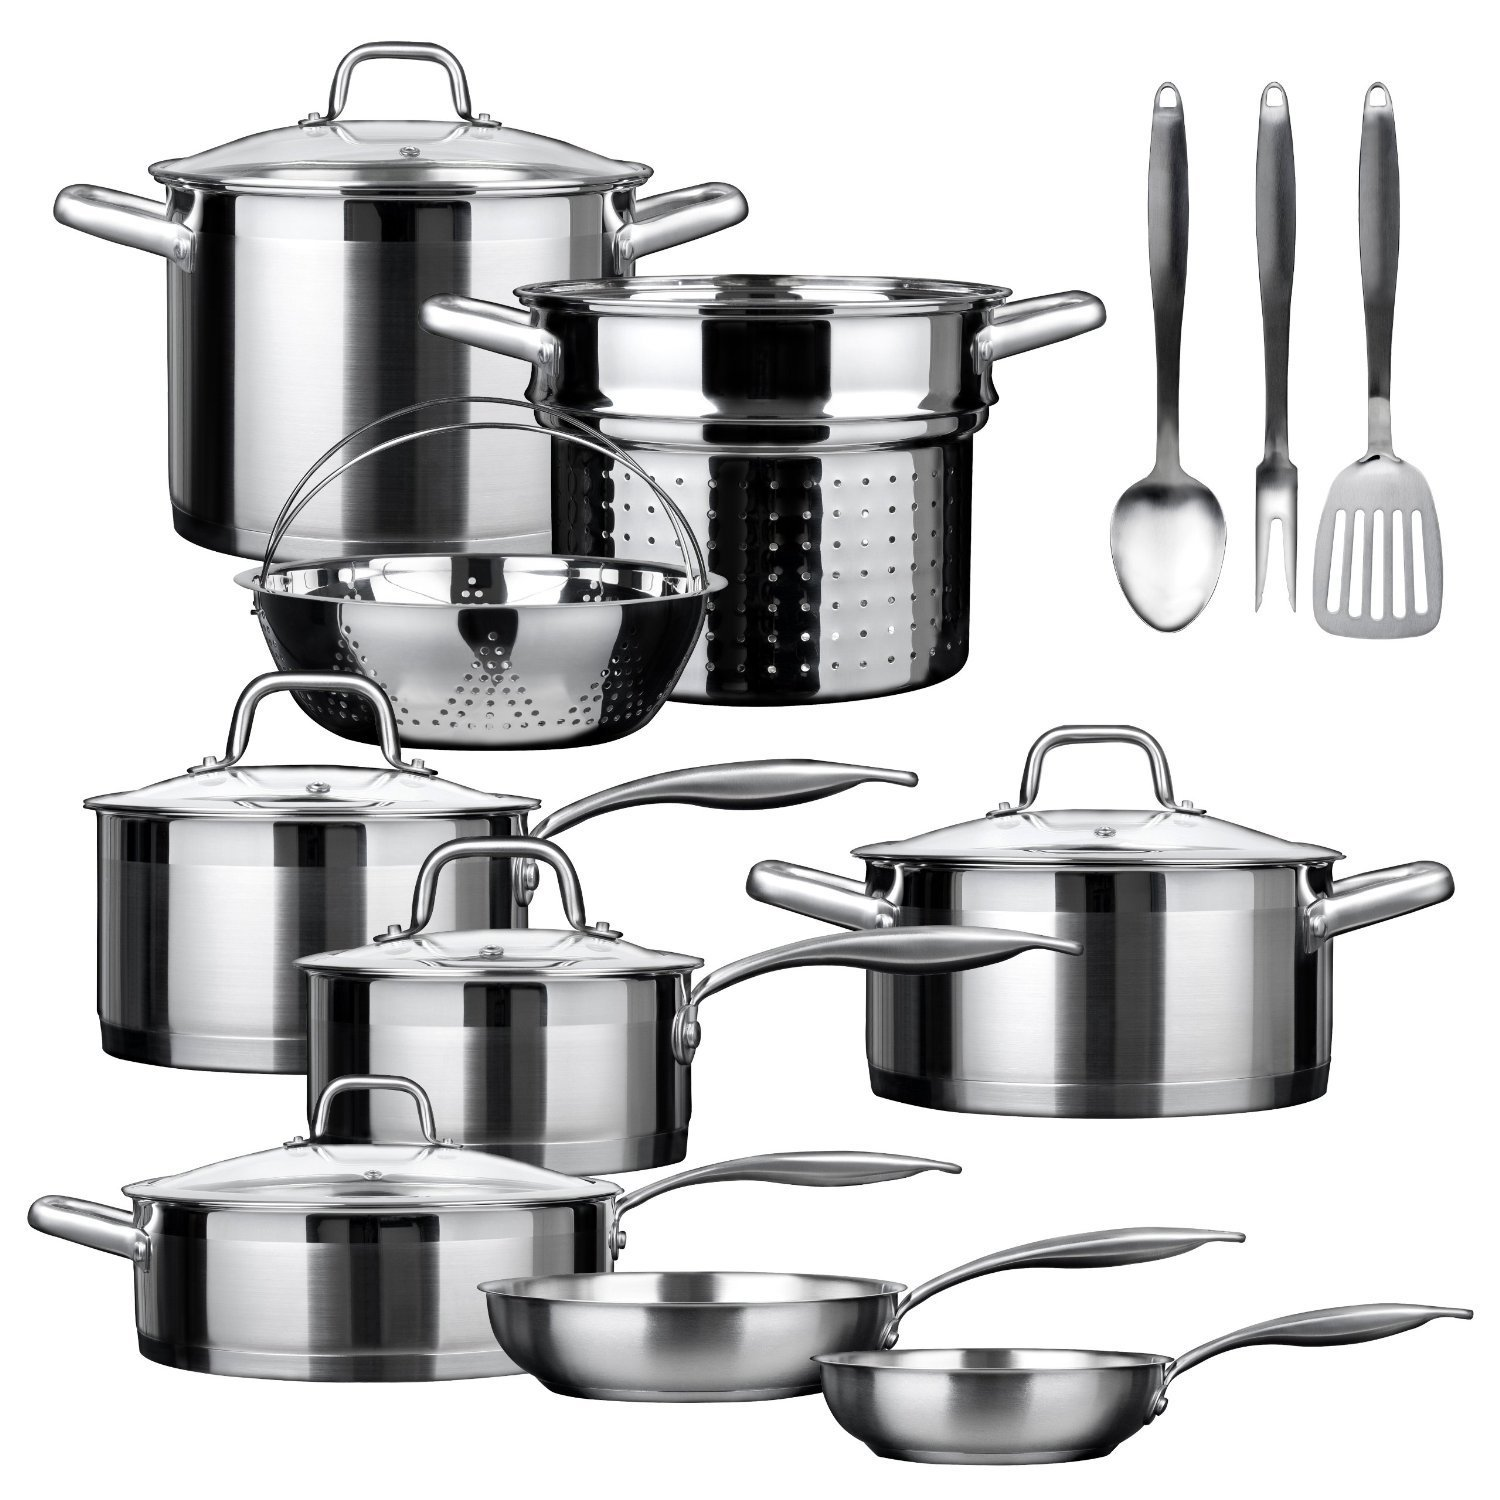 Duxtop SSIB-17, 17 piece Stainless Steel Cookware Set Review